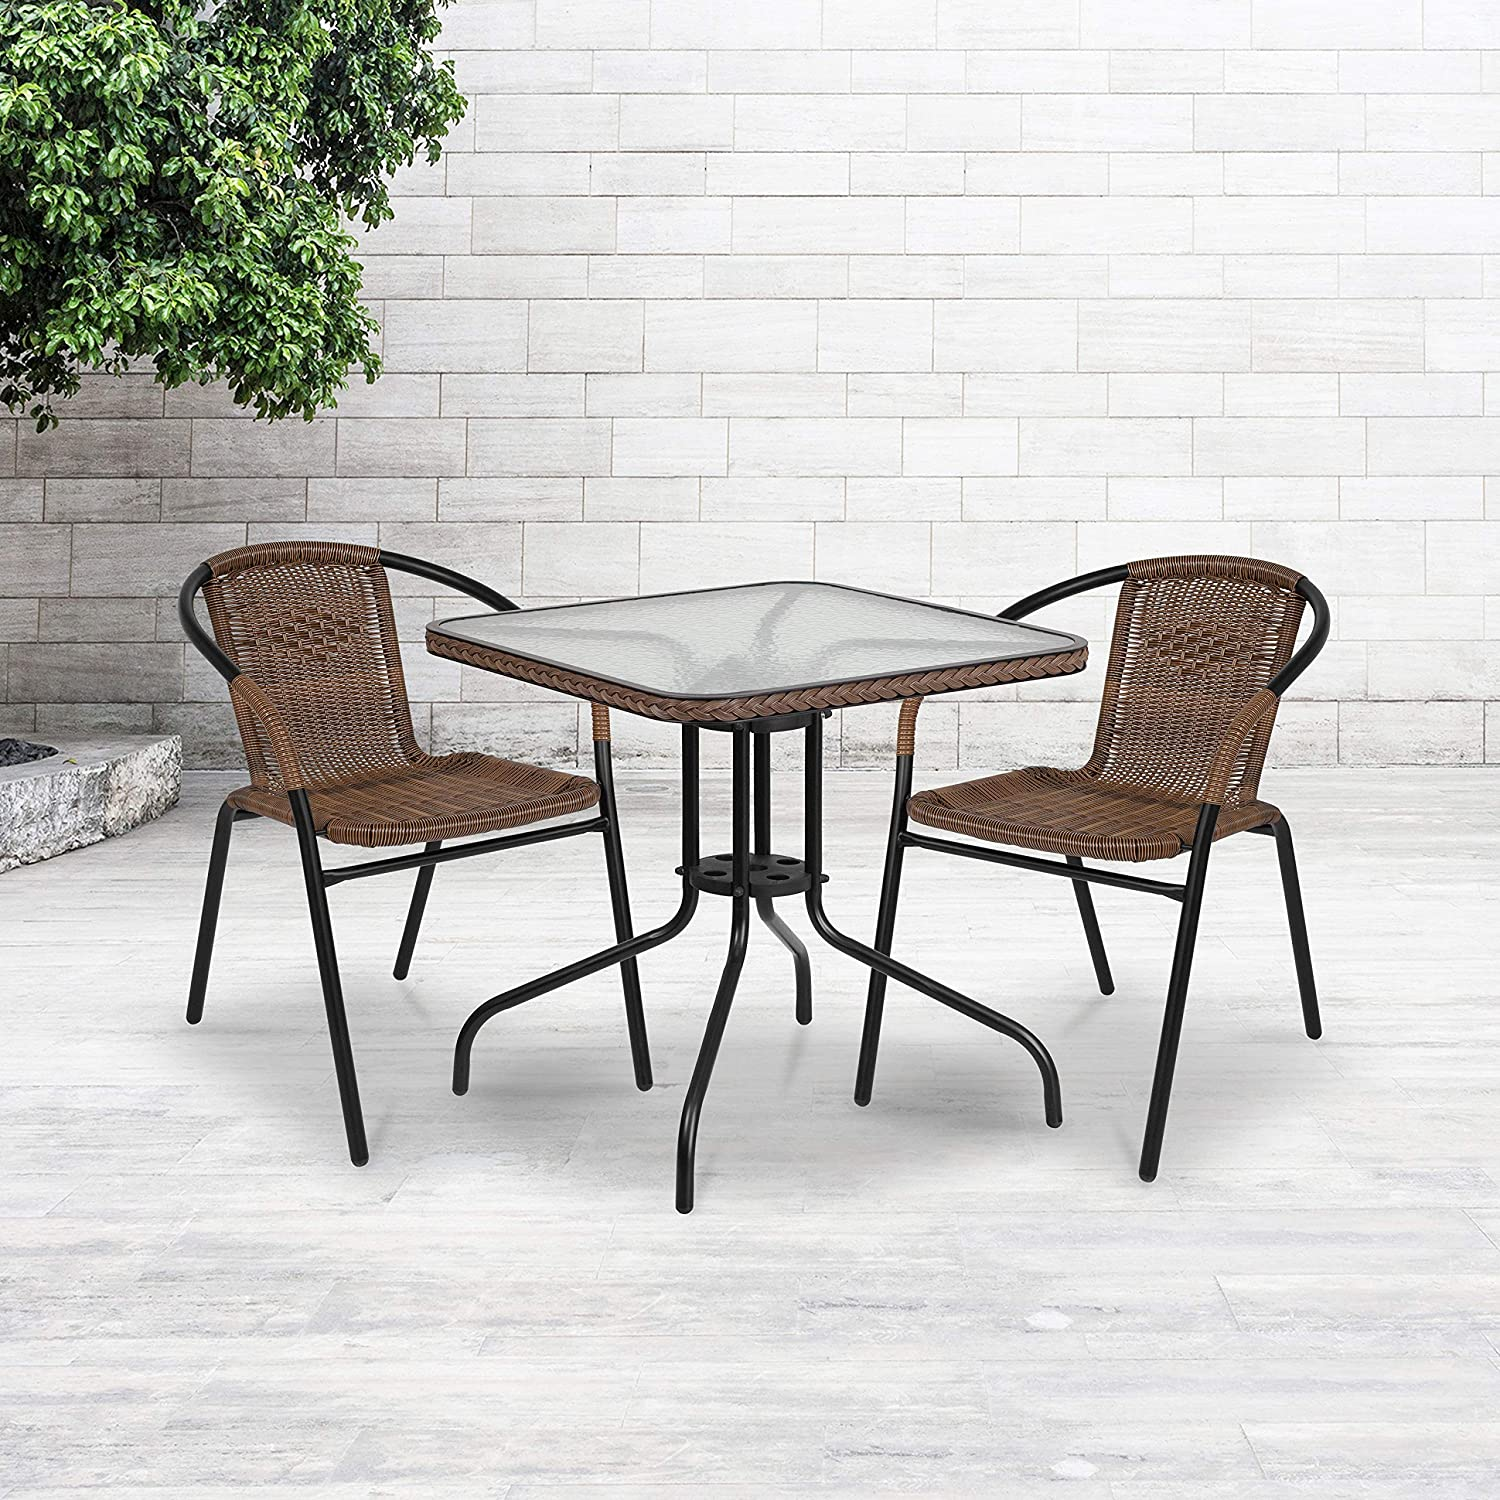 Flash Furniture 28'' Square Tempered Glass Metal Table with Dark Brown Rattan Edging: Kitchen & Dining